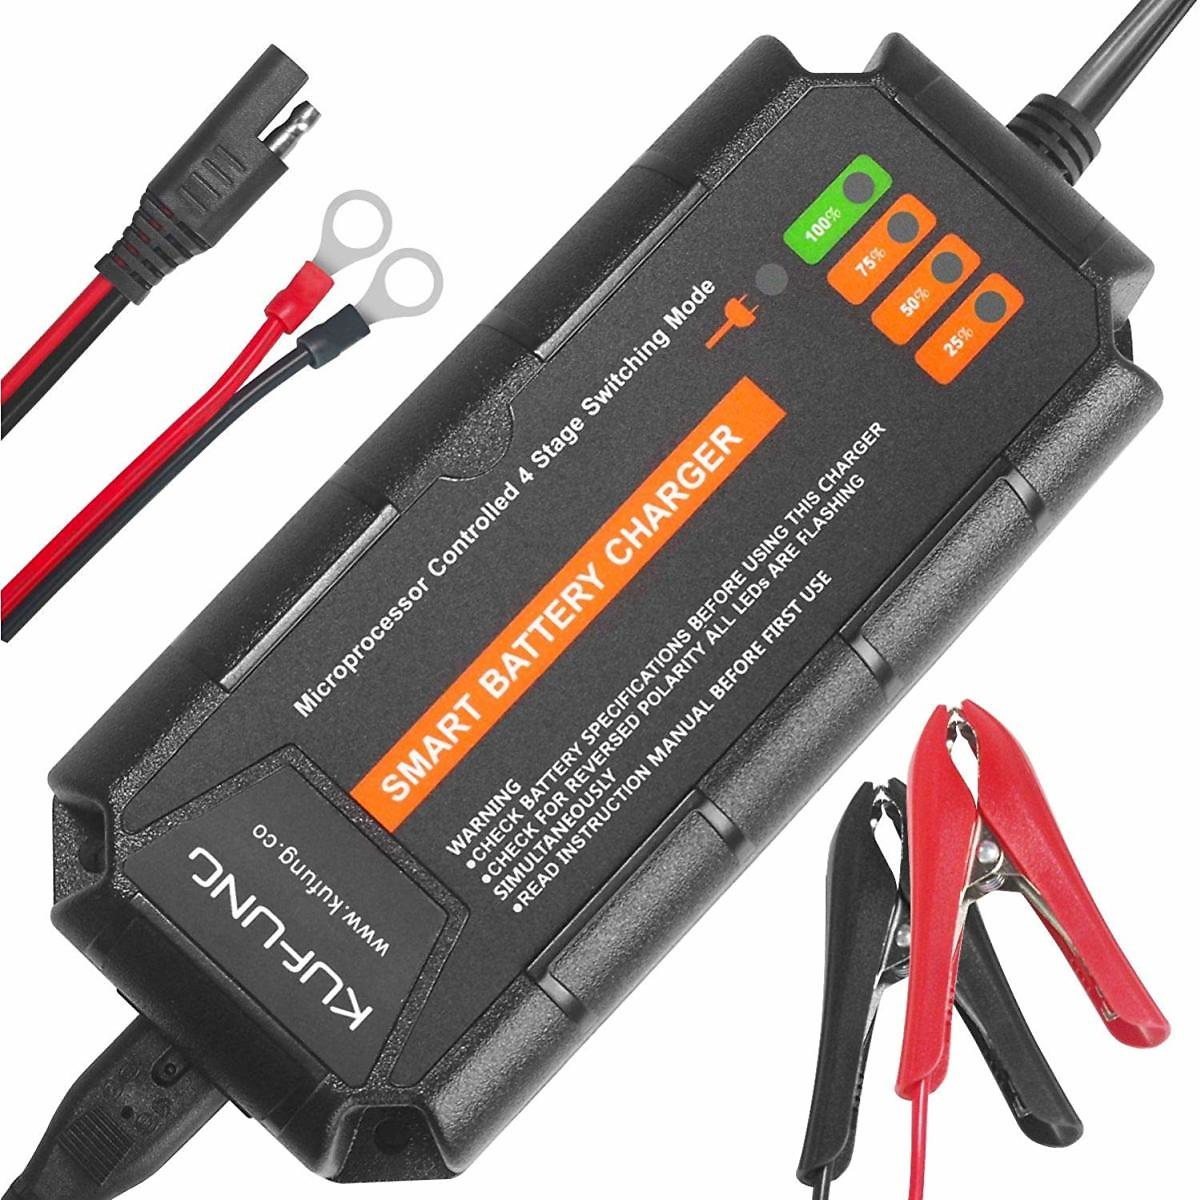 KUFUNG Fully Automatic Smart Battery Charger Maintainer Rescure for All Types Lead Acid Batteries of Car, Motorcycle, Boat - Bat